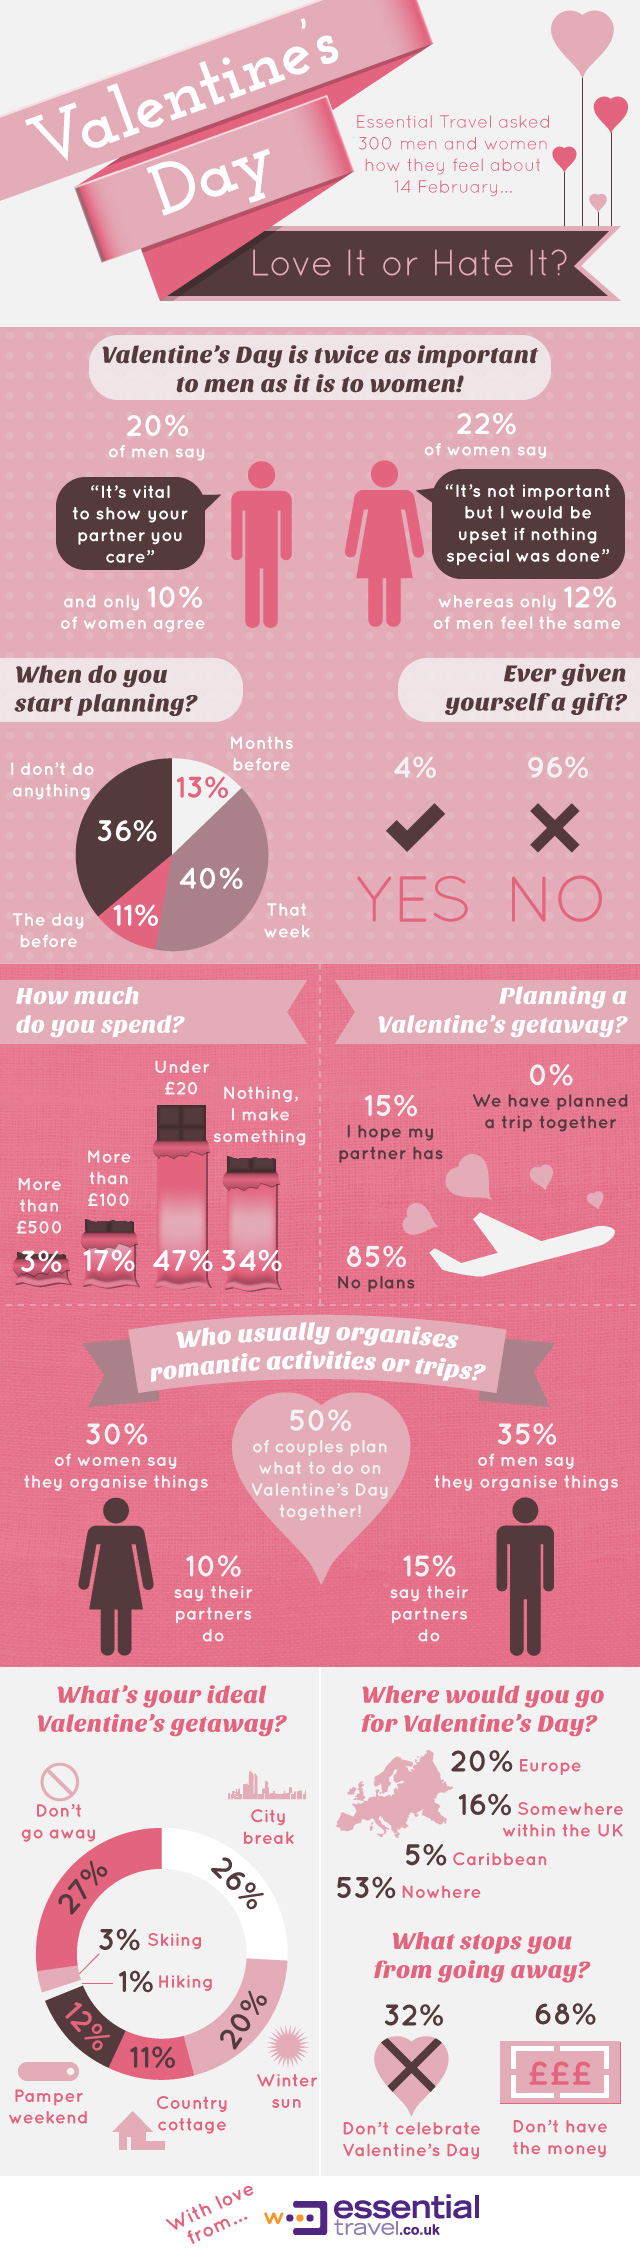 05 valentines-day-infographic